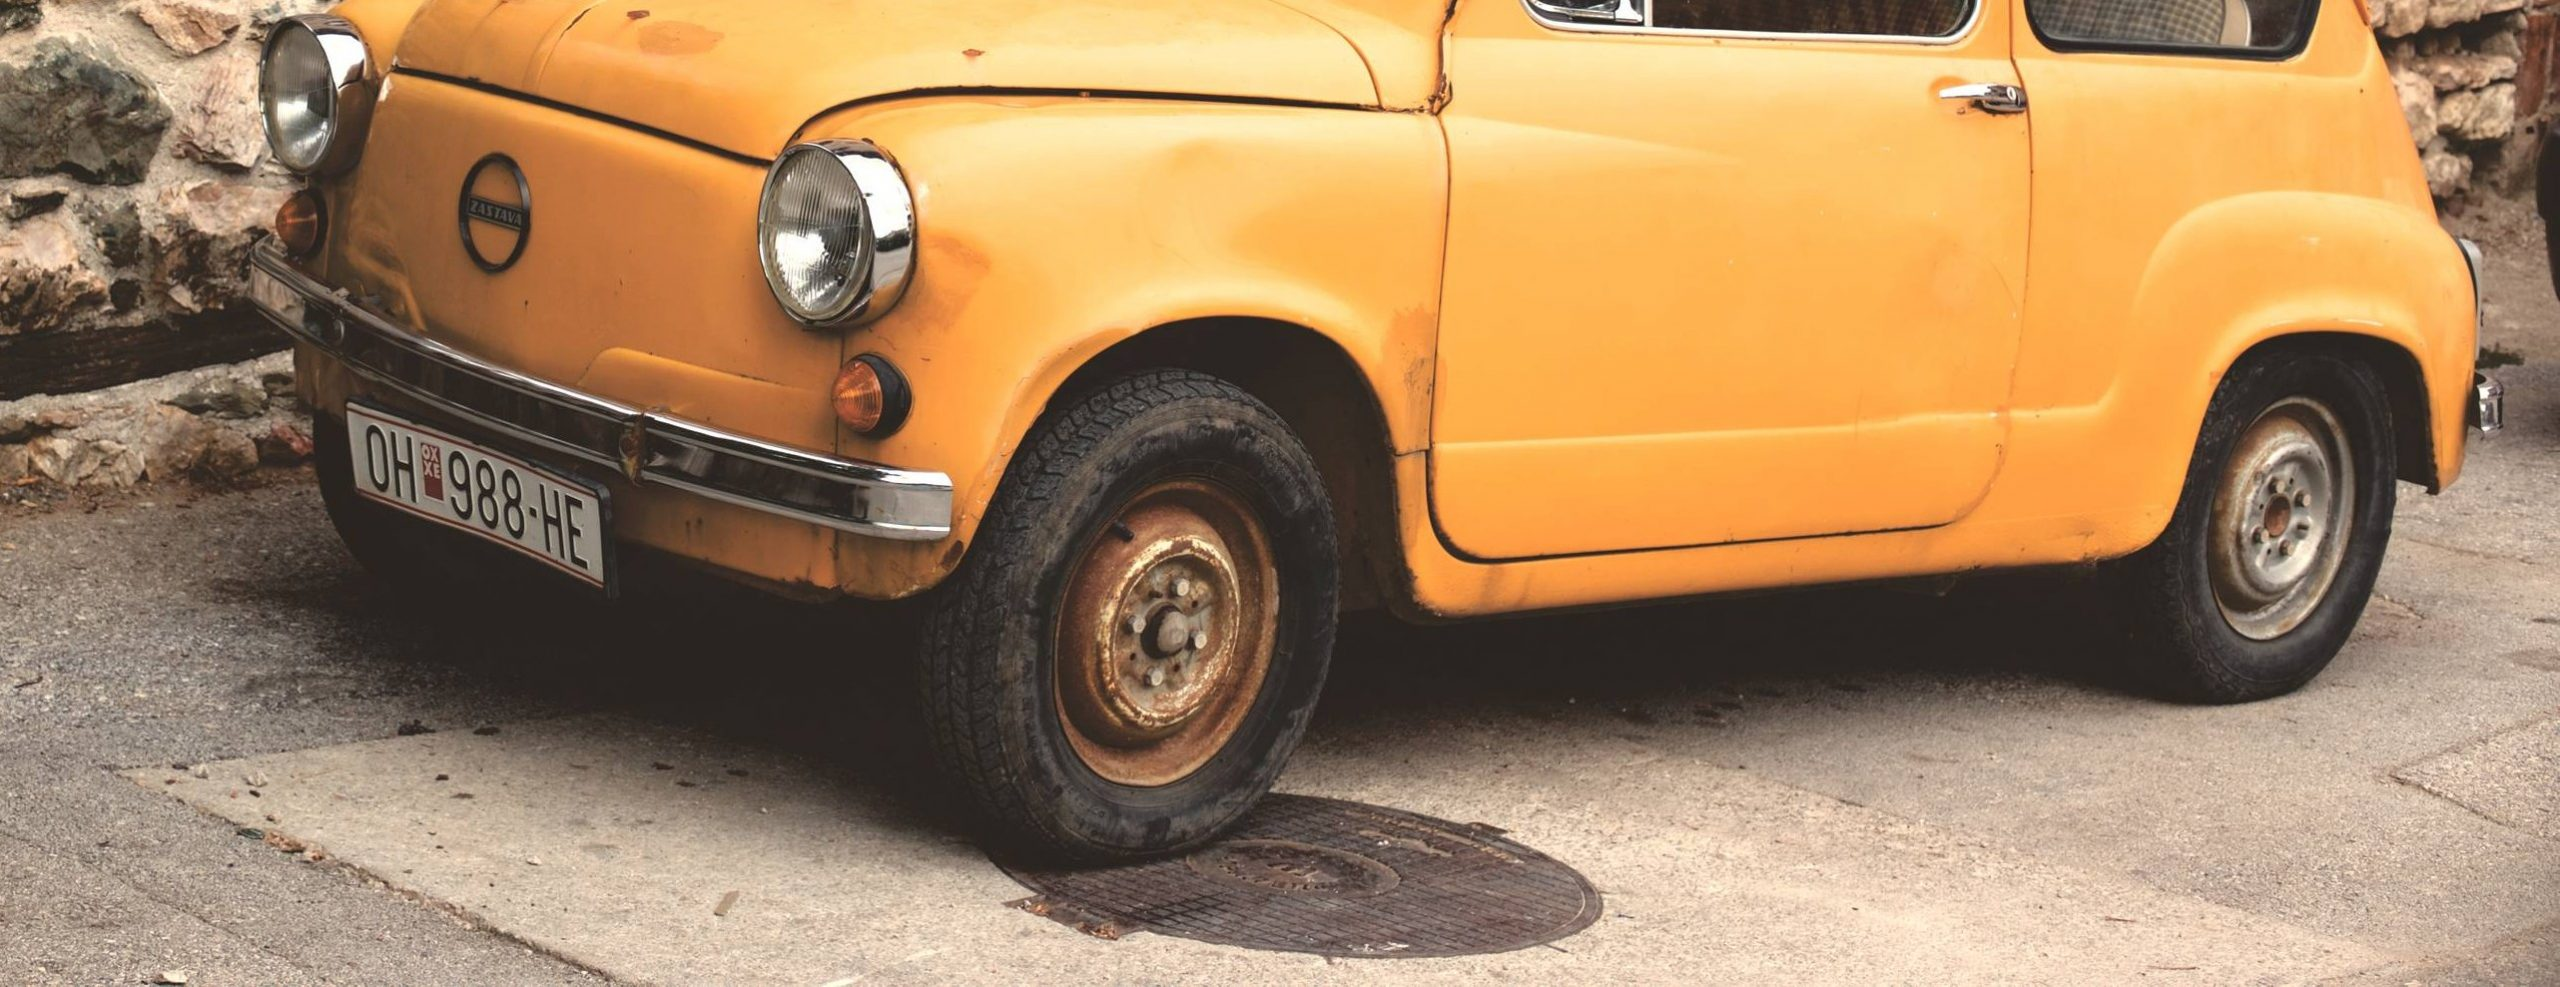 Does your Car tyres need replacement?